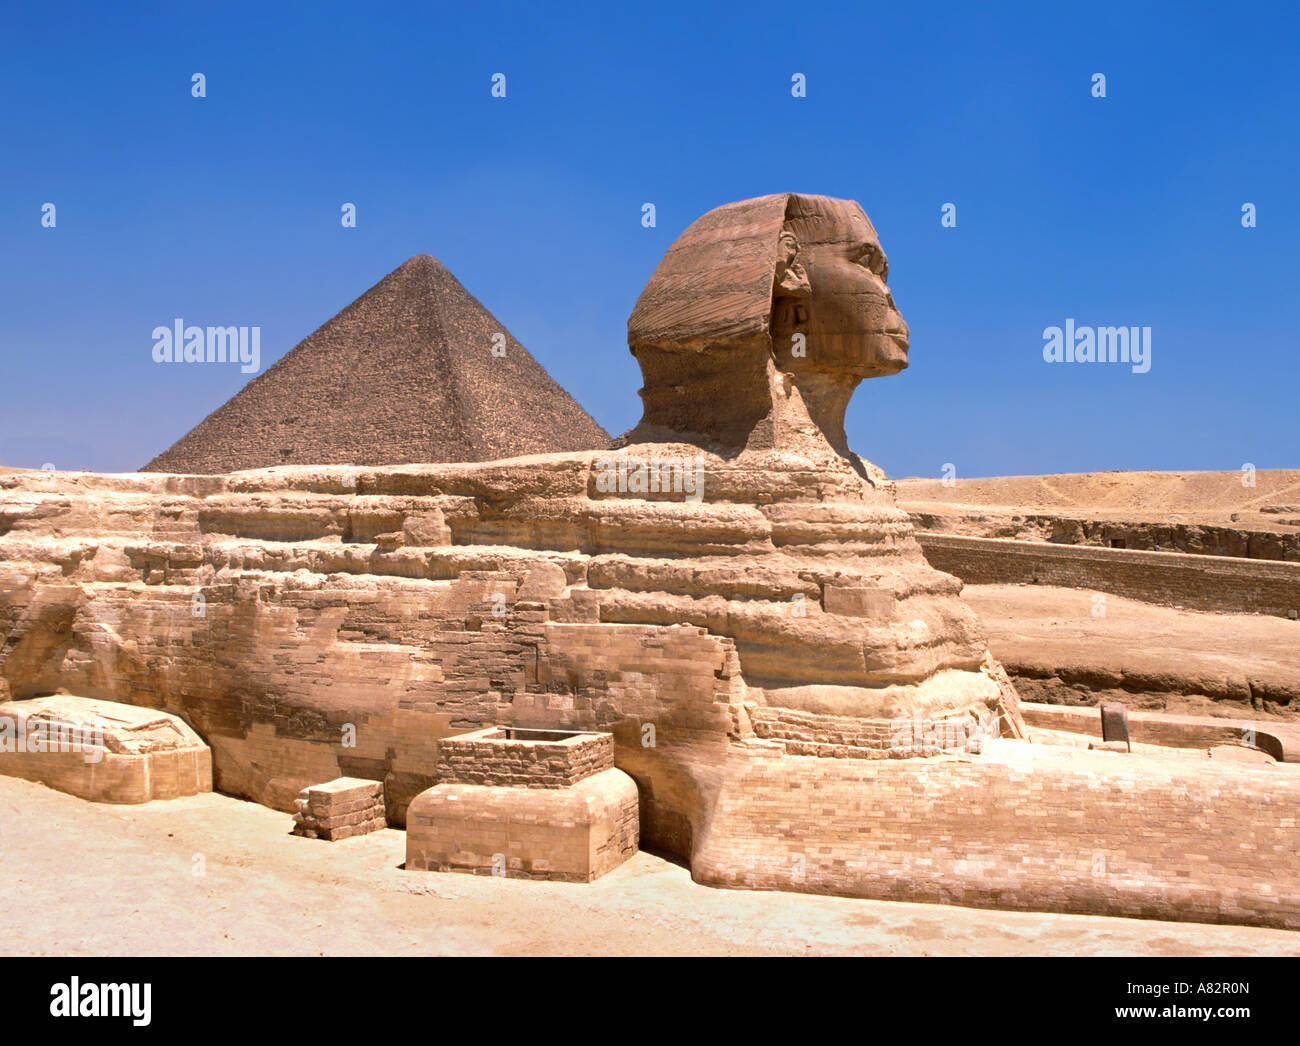 West side view of Sphinx Egypt - Stock Image